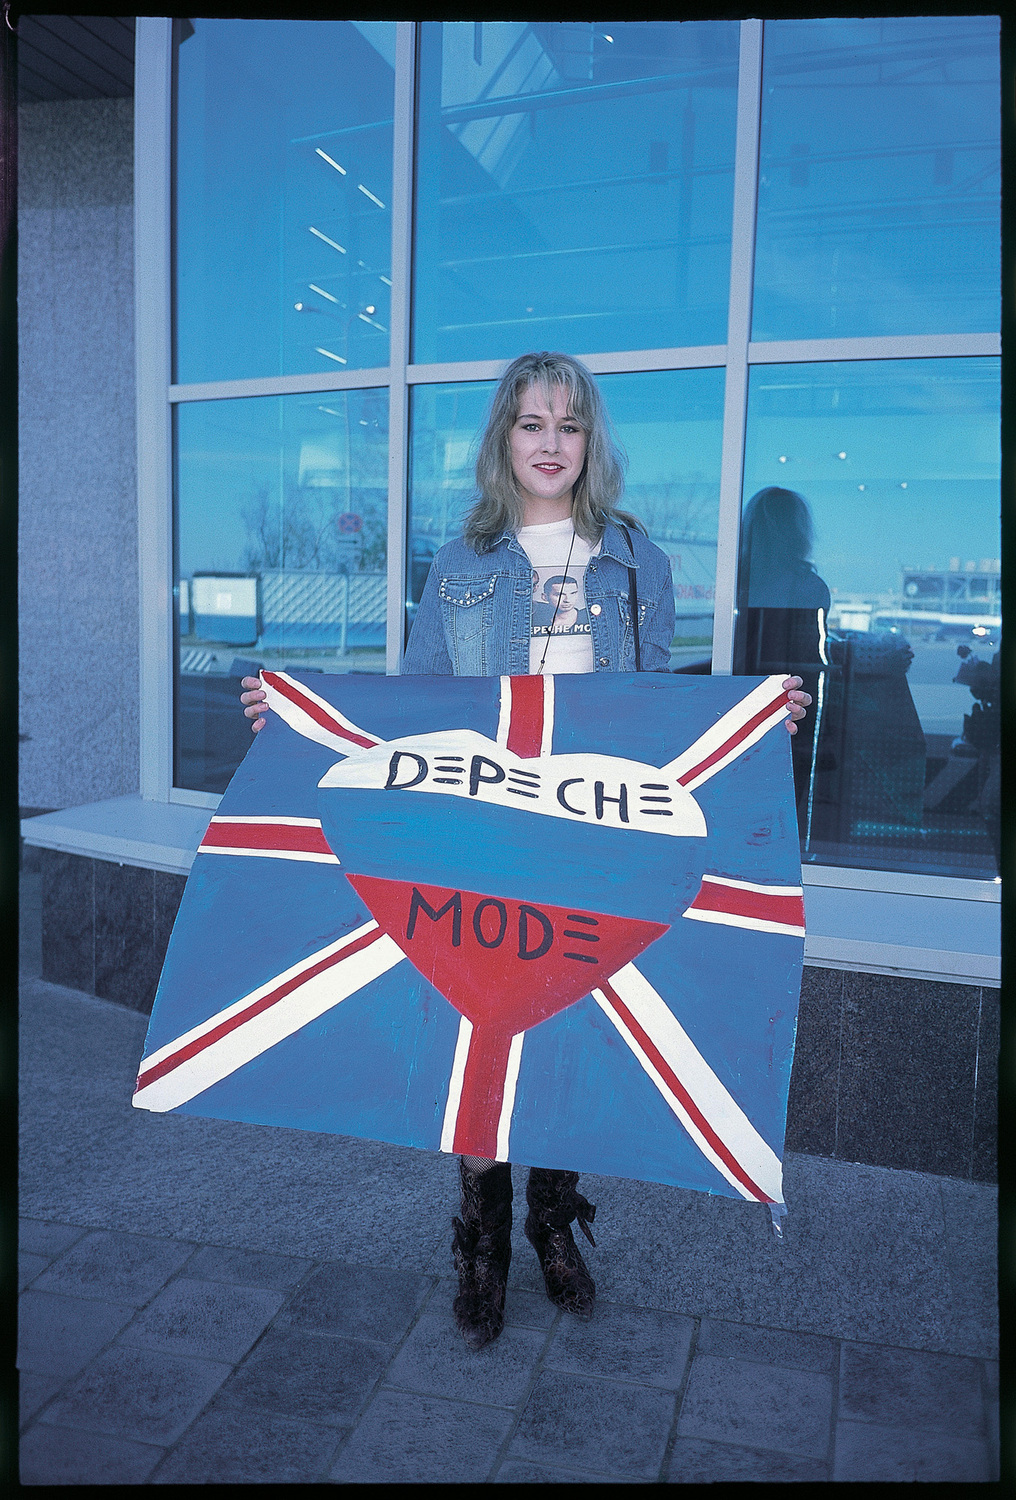 Our Hobby is Depeche Mode, 2006. Masha at St. Petersburg airport.